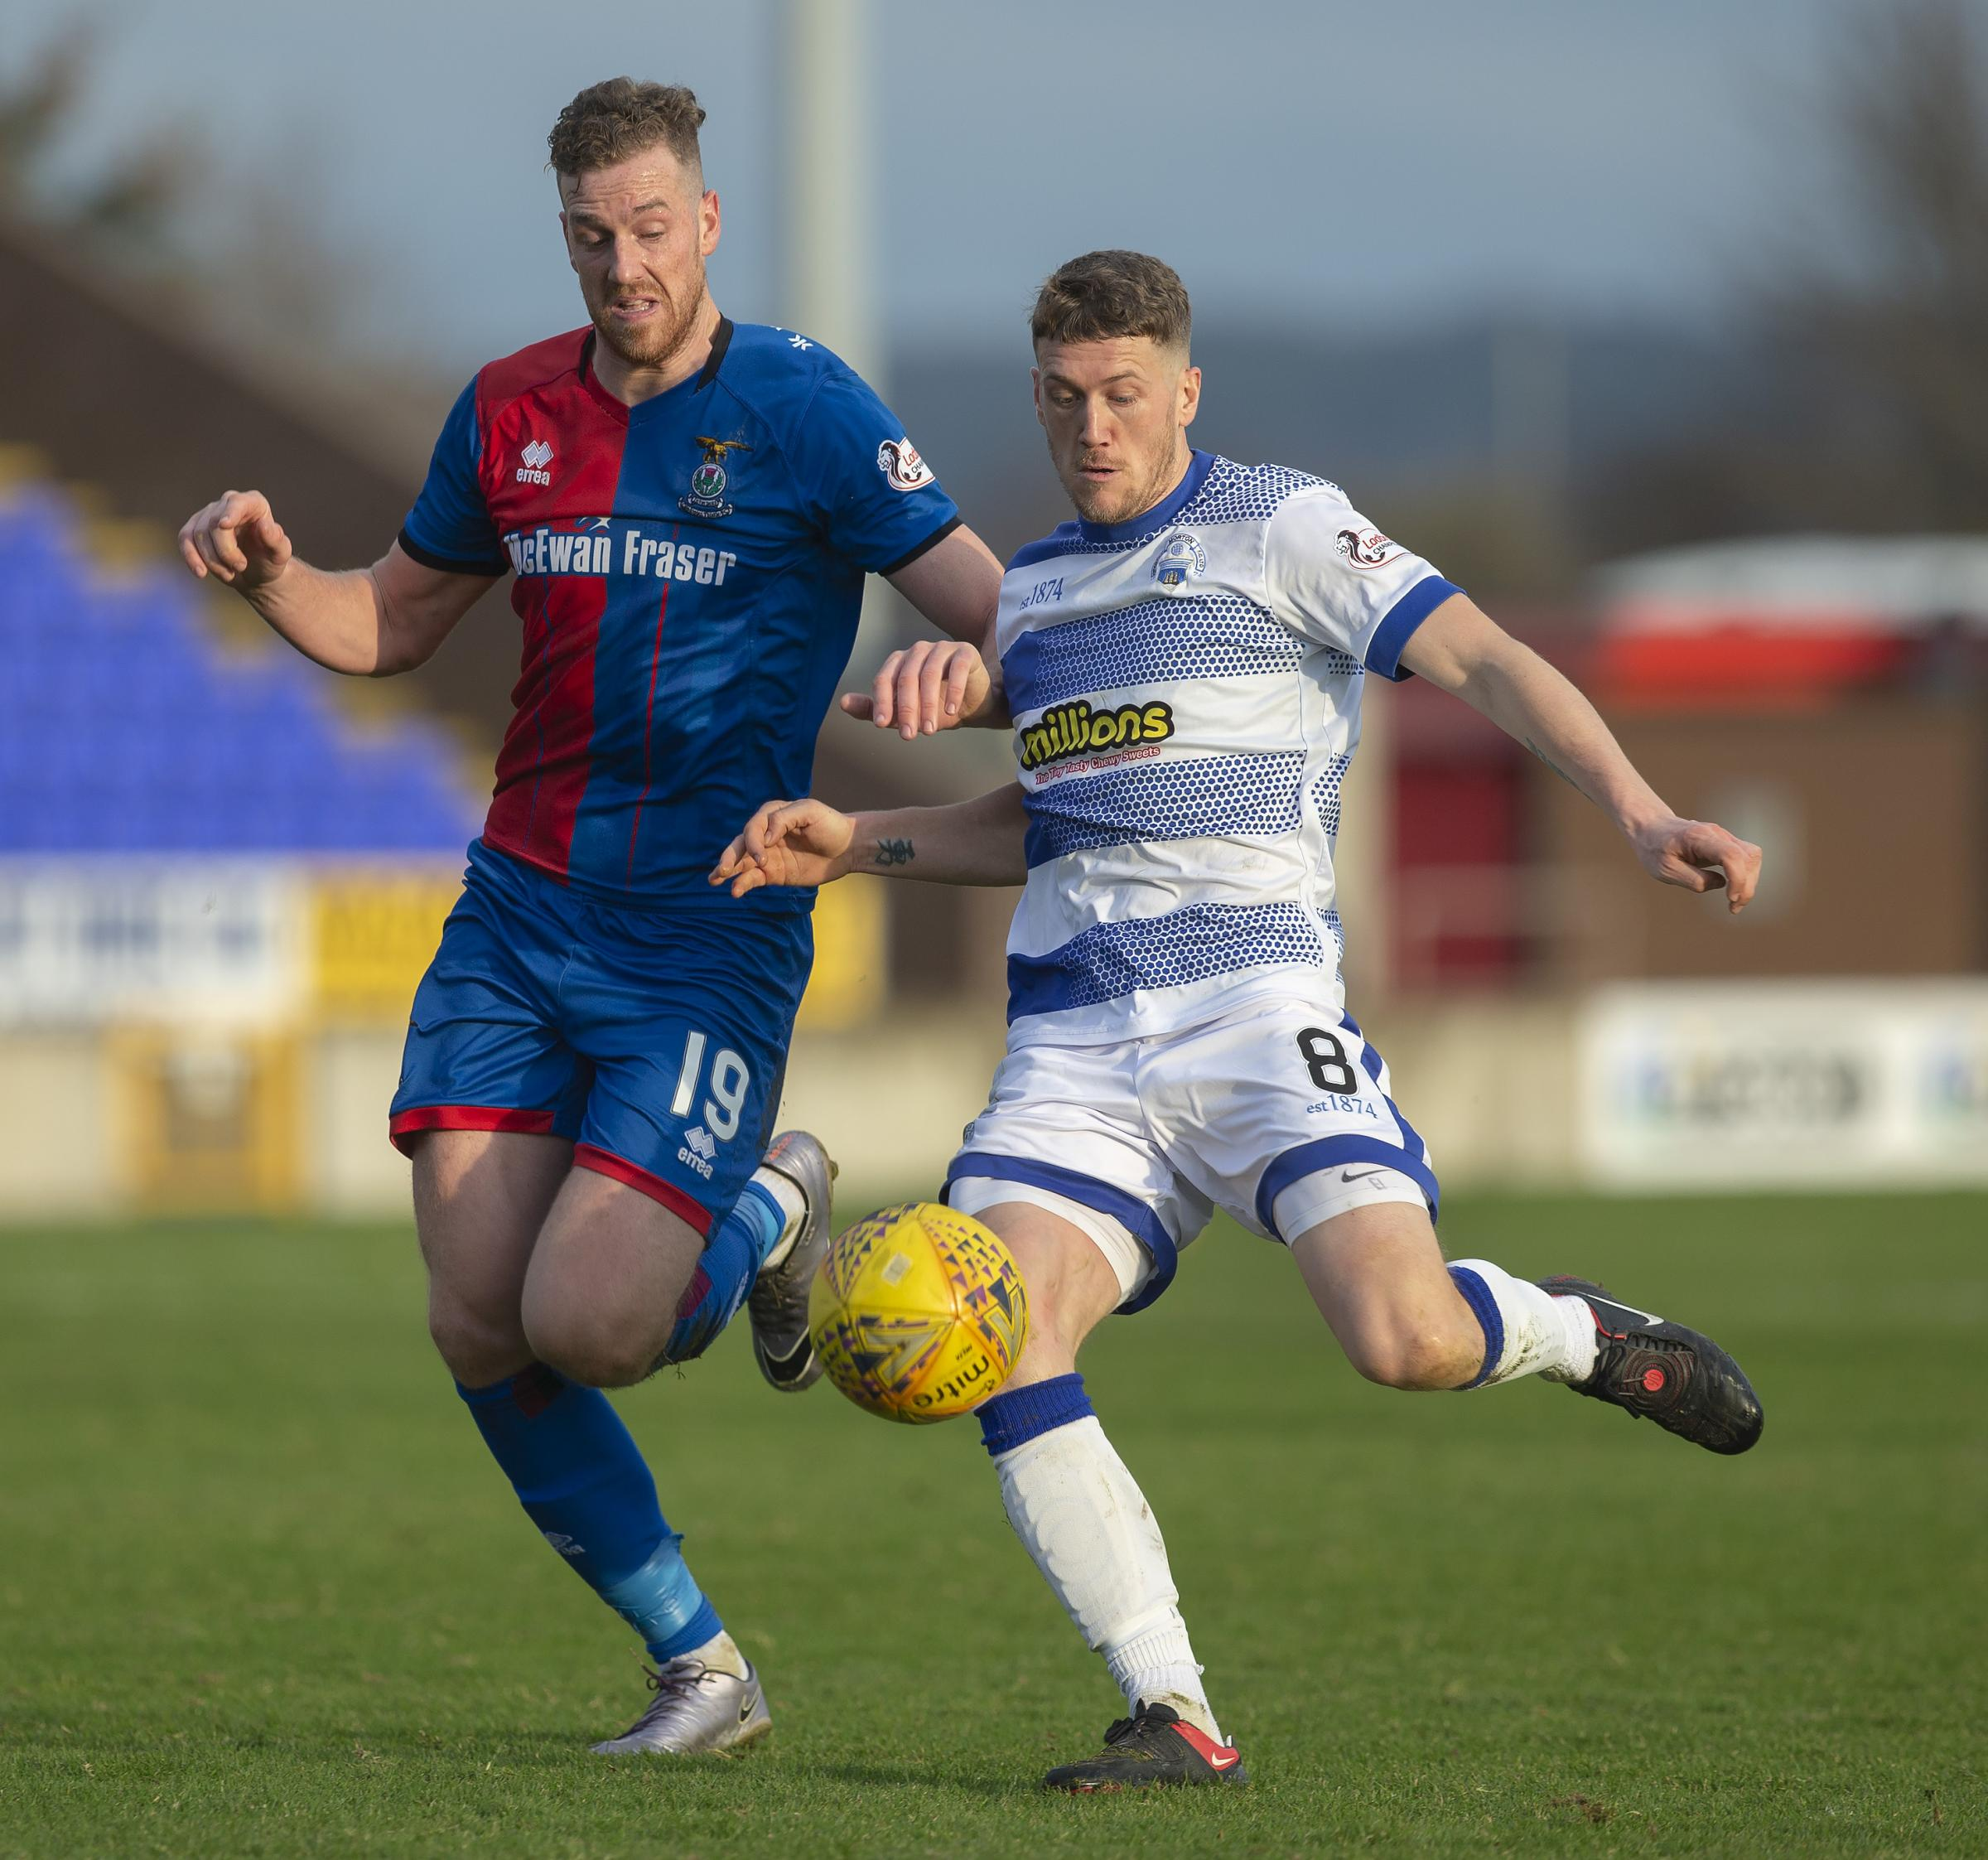 Morton captain admits side are in relegation scrap